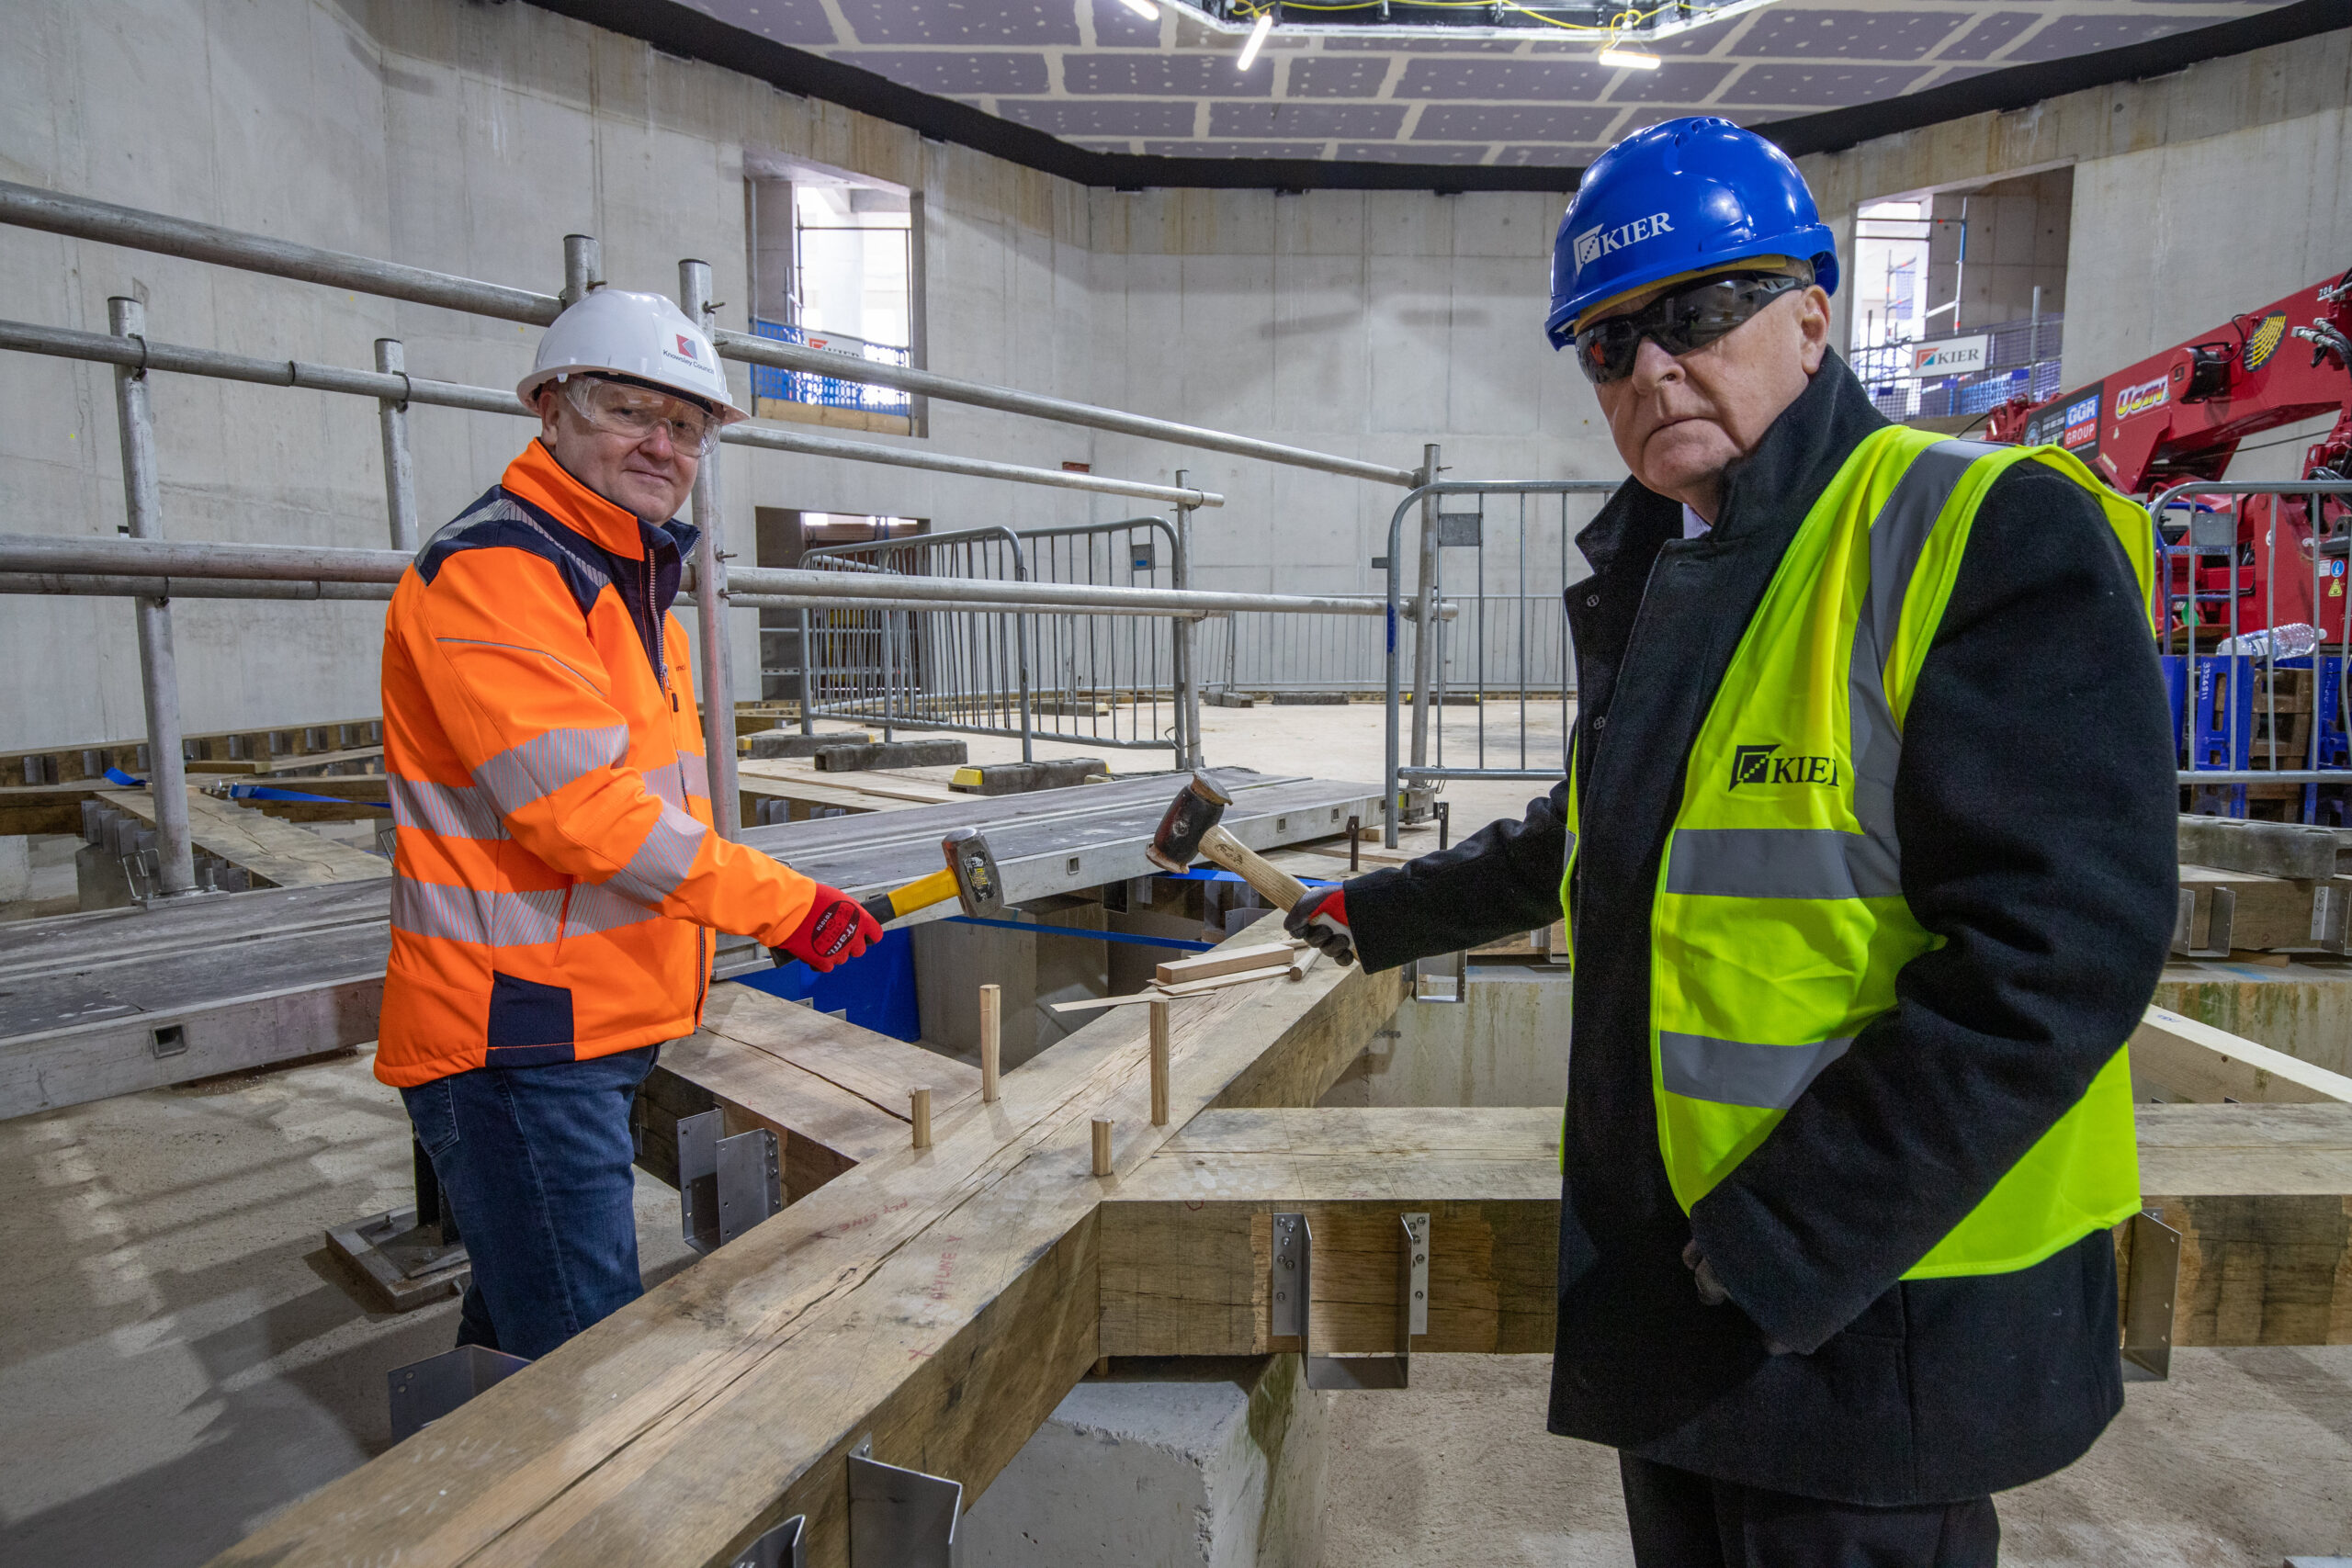 Mike Harden, Chief Executive of Knowsley Council and Cllr Tony Brennan at the Shakespeare North Playhouse site.